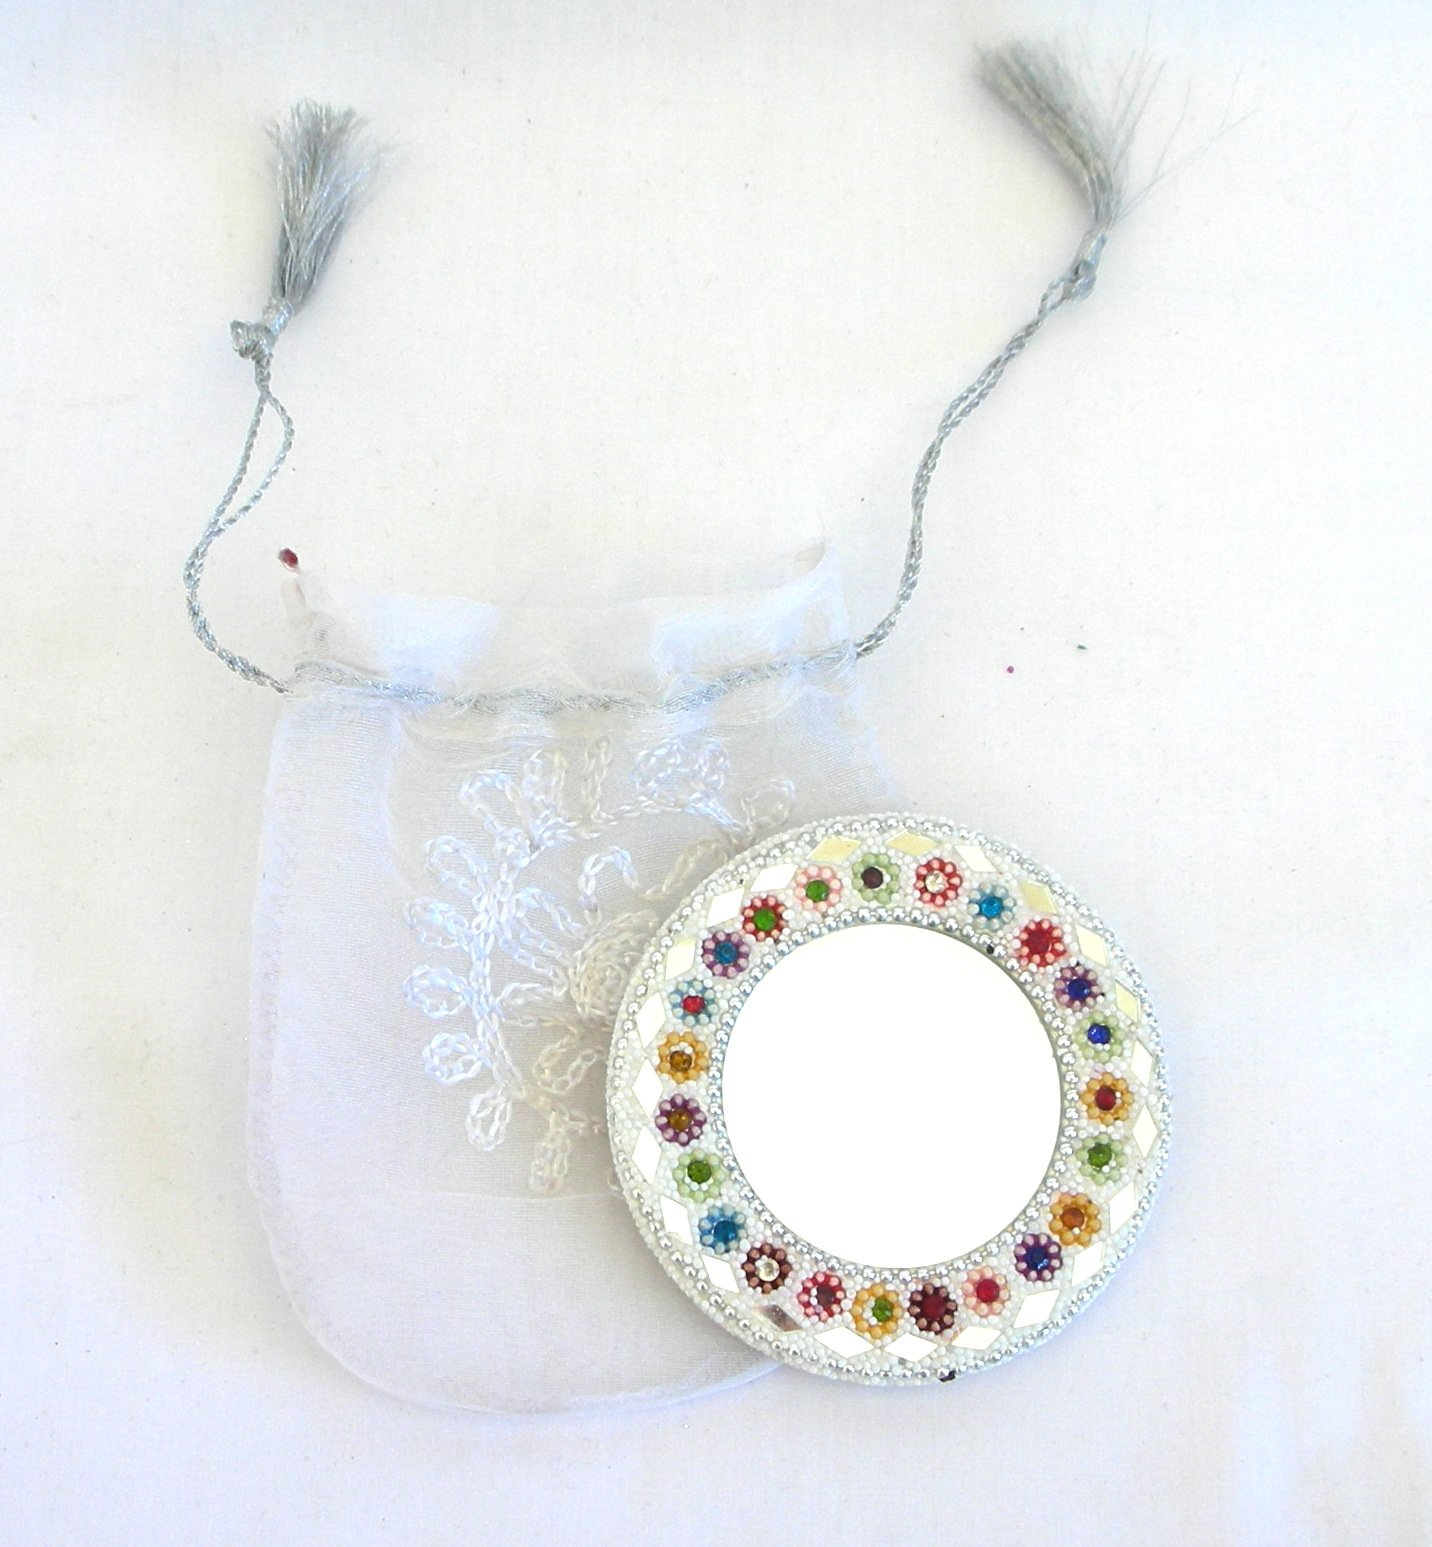 Handmade White Compact Mirror with Beads in a Gift Bag